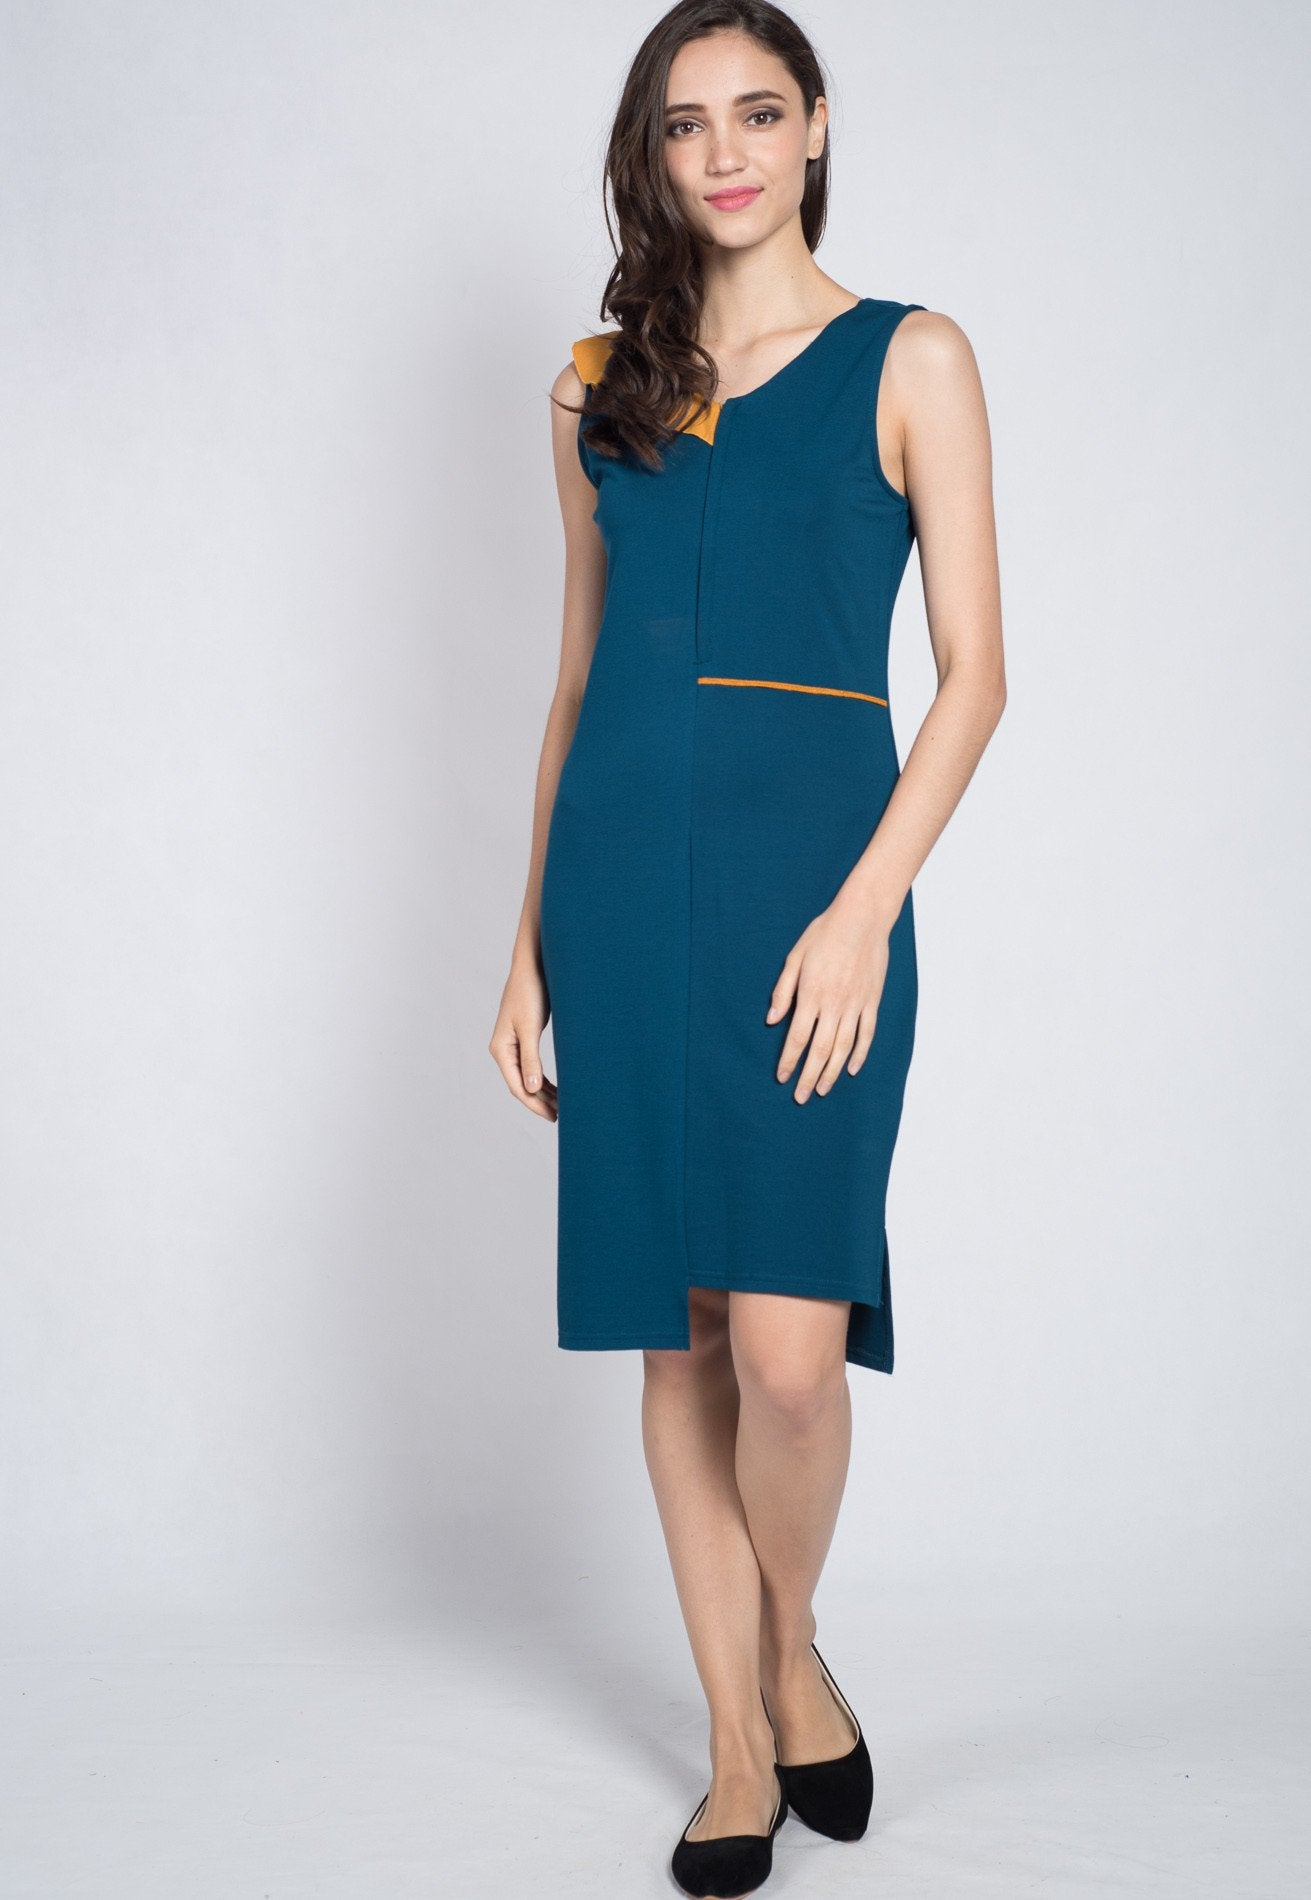 SALE Forest Aerial Frills Nursing Dress  by Jump Eat Cry - Maternity and nursing wear